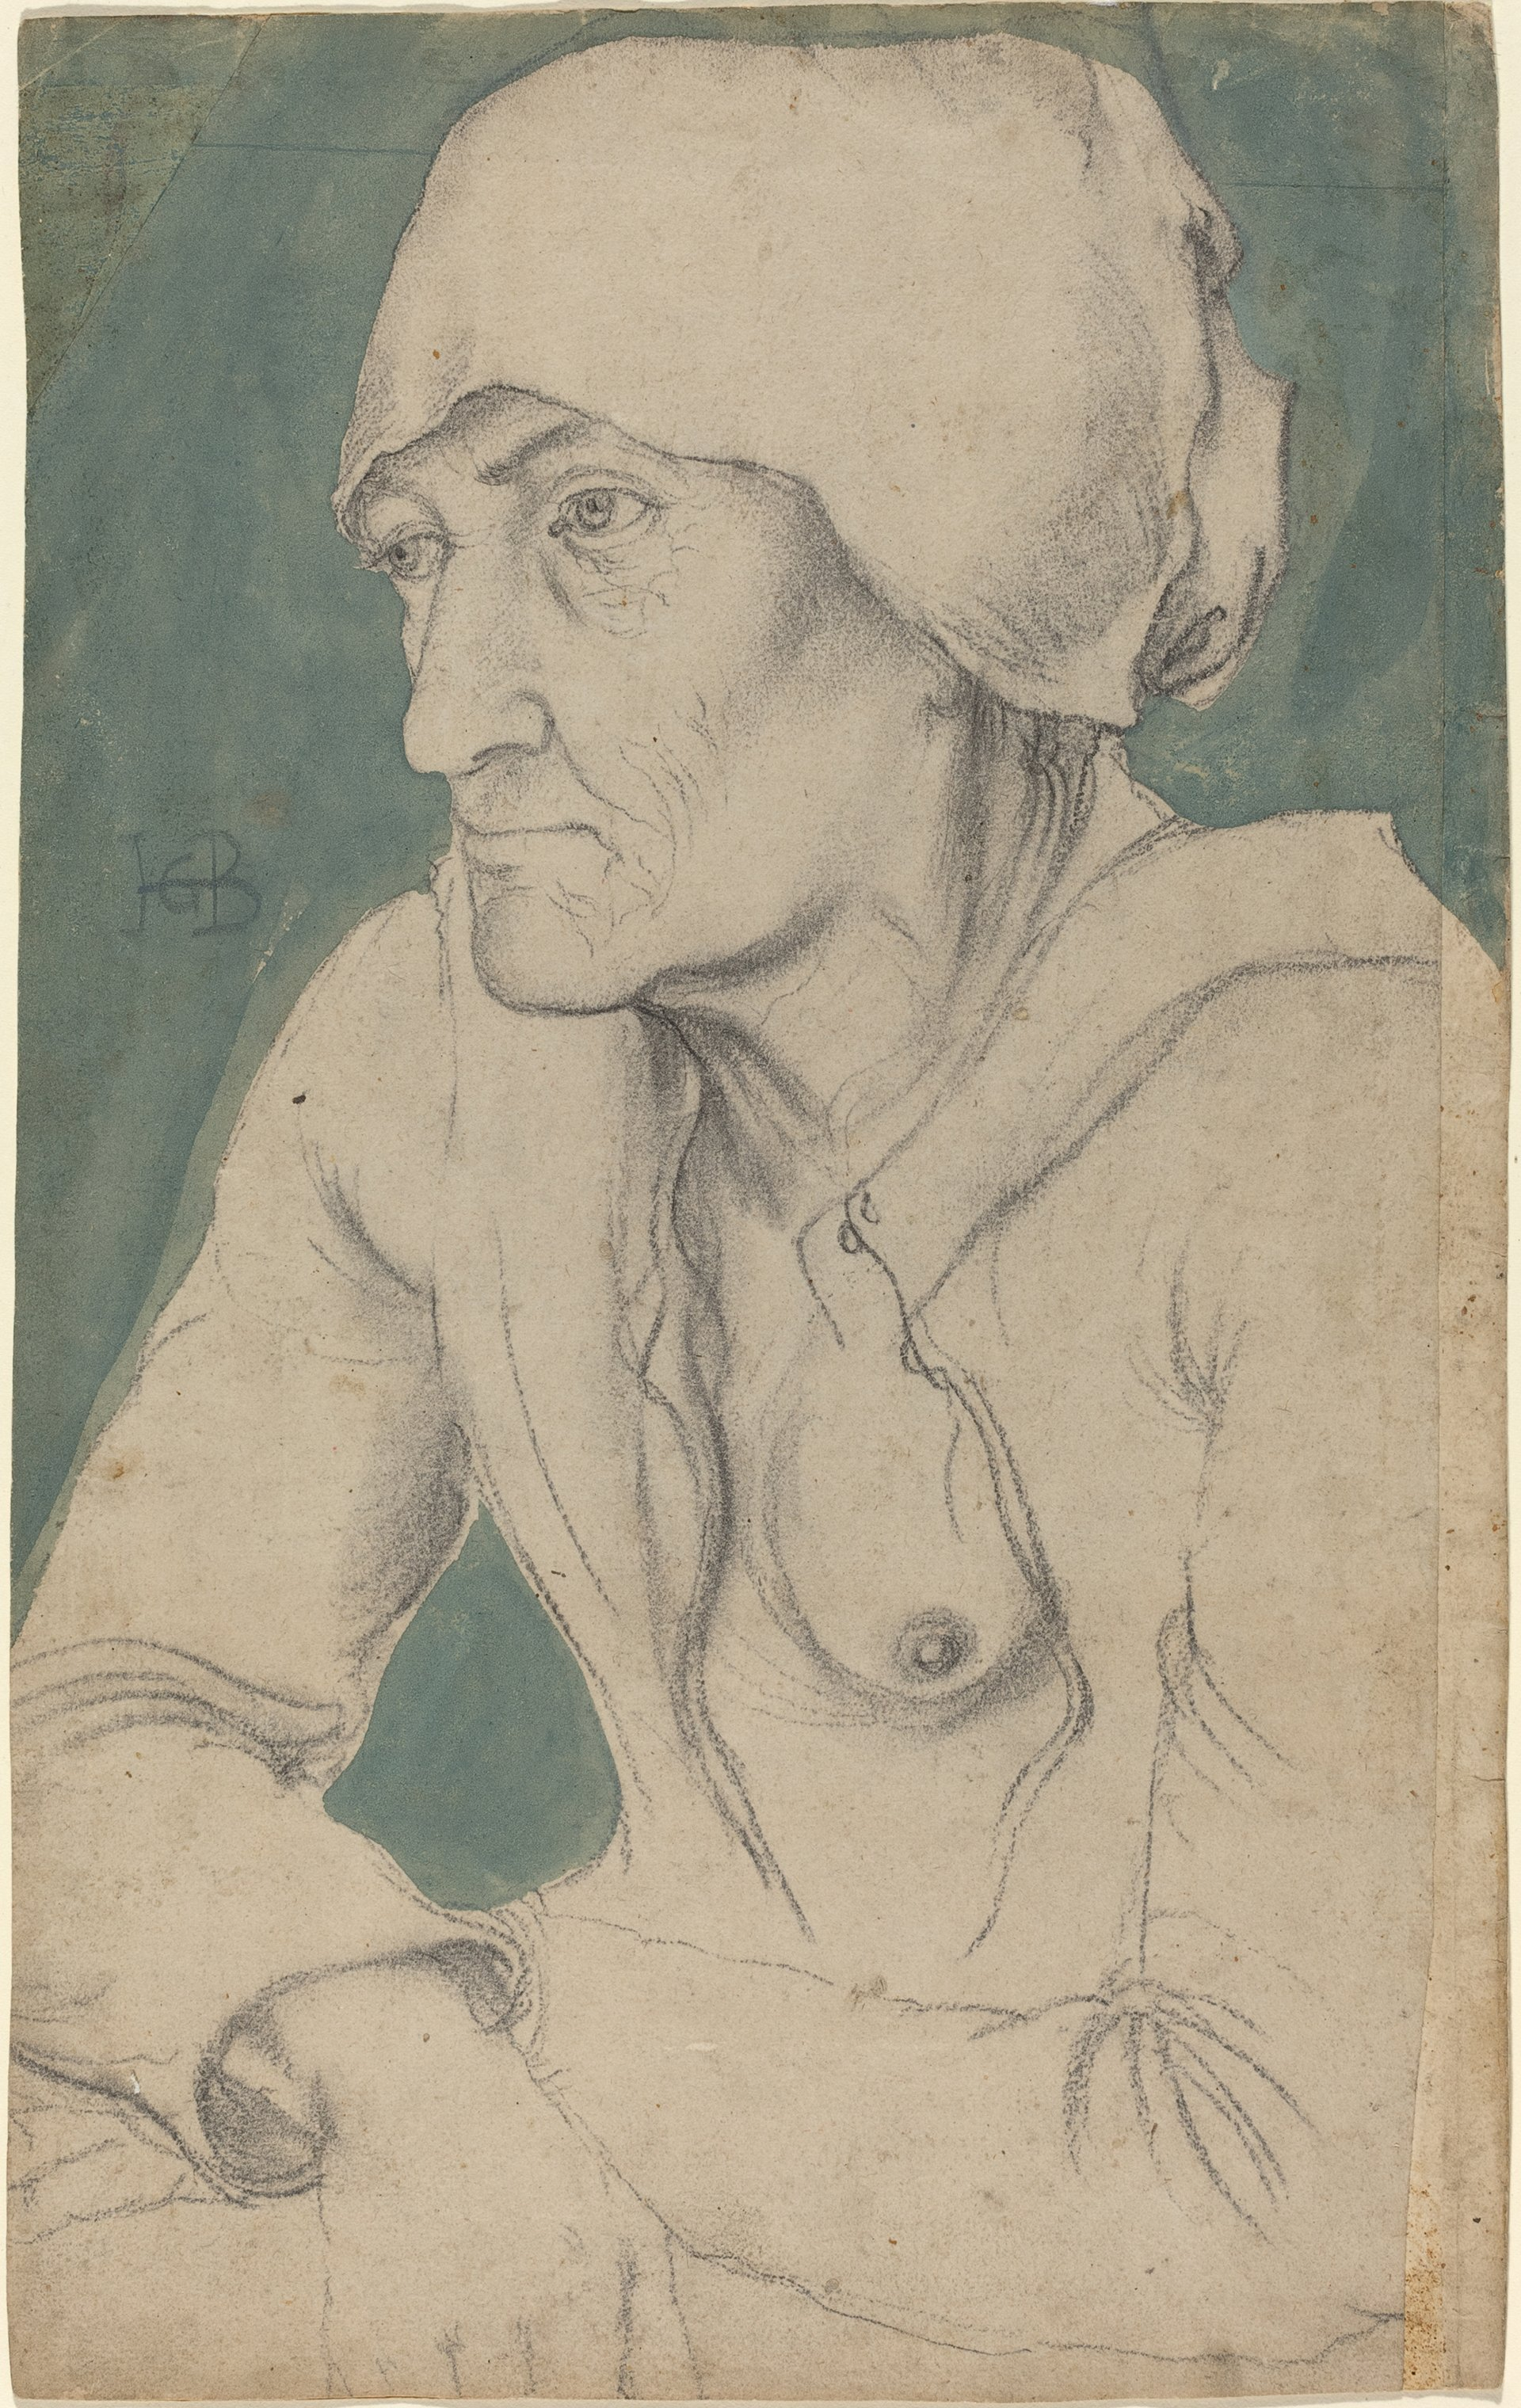 Image of Hans Baldung Grien: Half-Figure of an Old Woman with a Cap, c. 1535, lent by National Gallery of Art Washington.